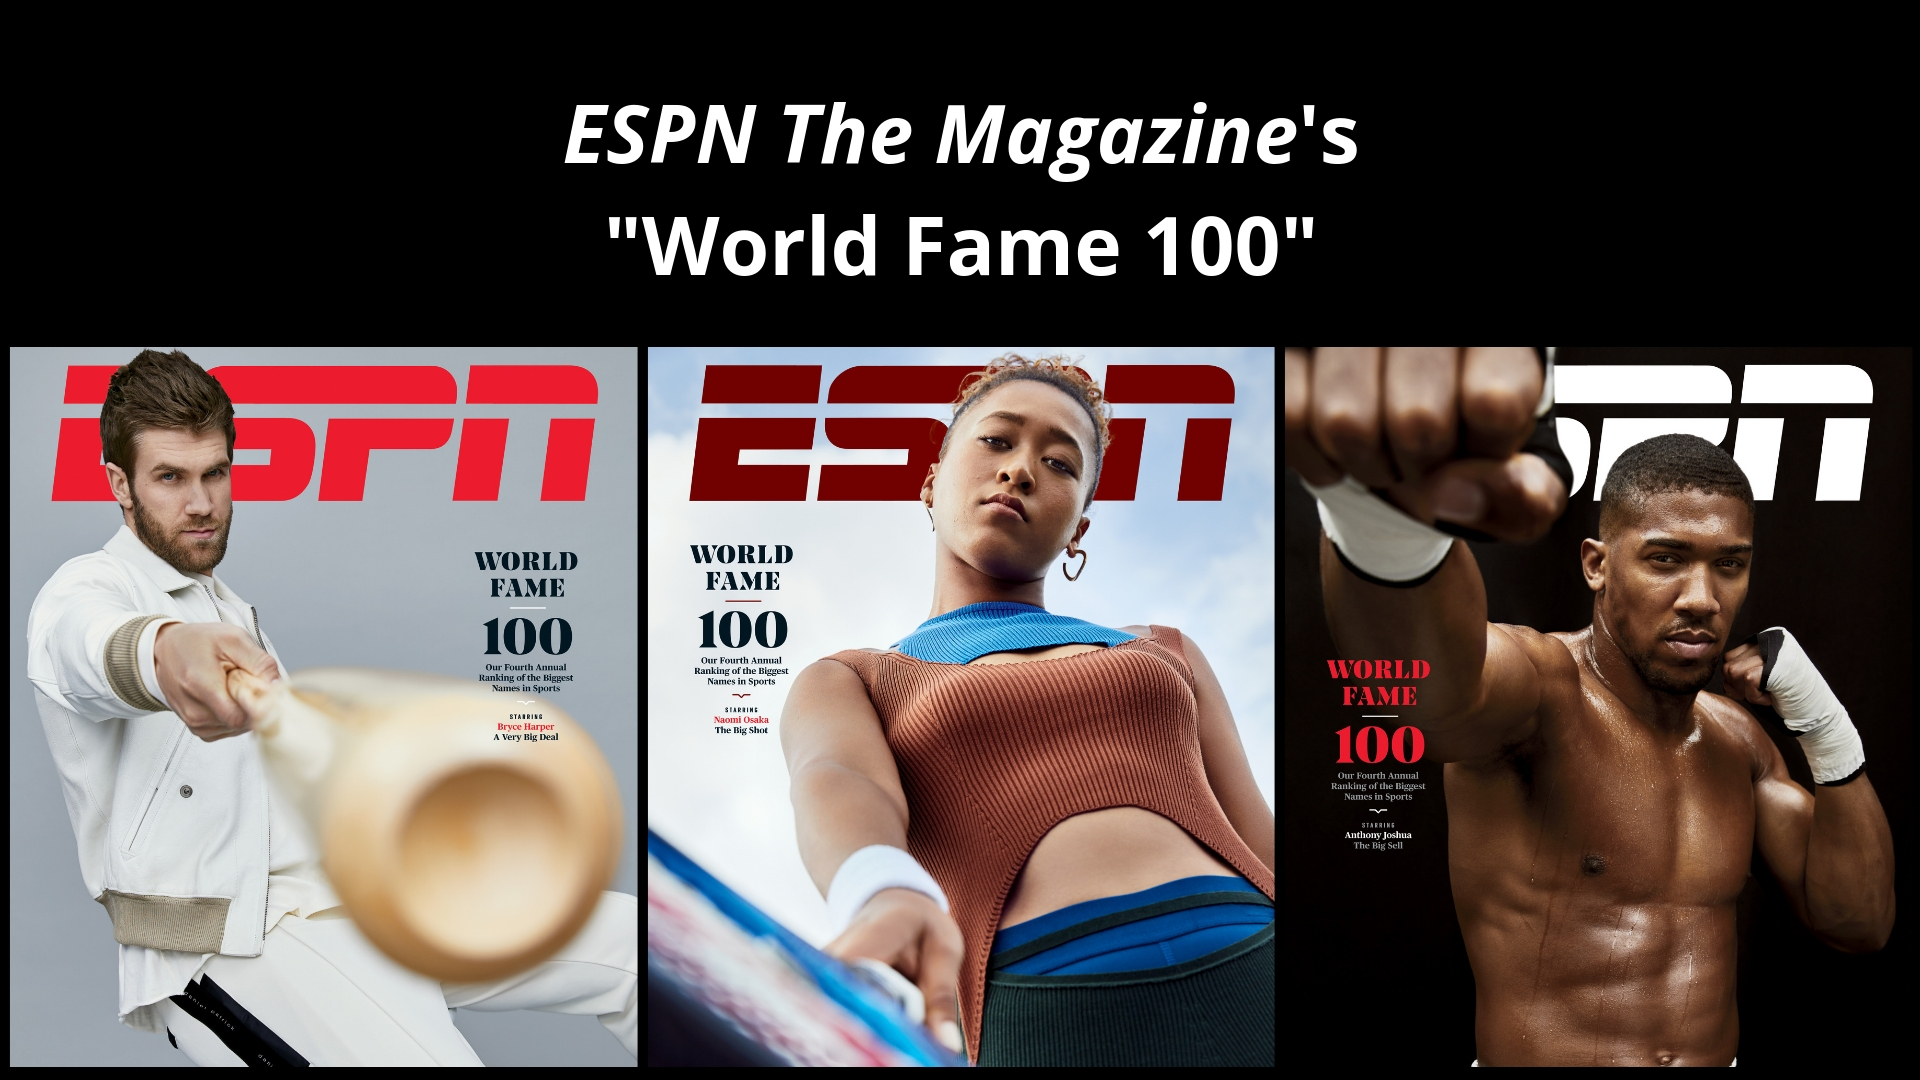 Espn The Magazine S World Fame 100 Featuring Multiple Covers With Athletes Bryce Harper Anthony Joshua And Naomi Osaka On Newsstands Friday Espn Press Room U S